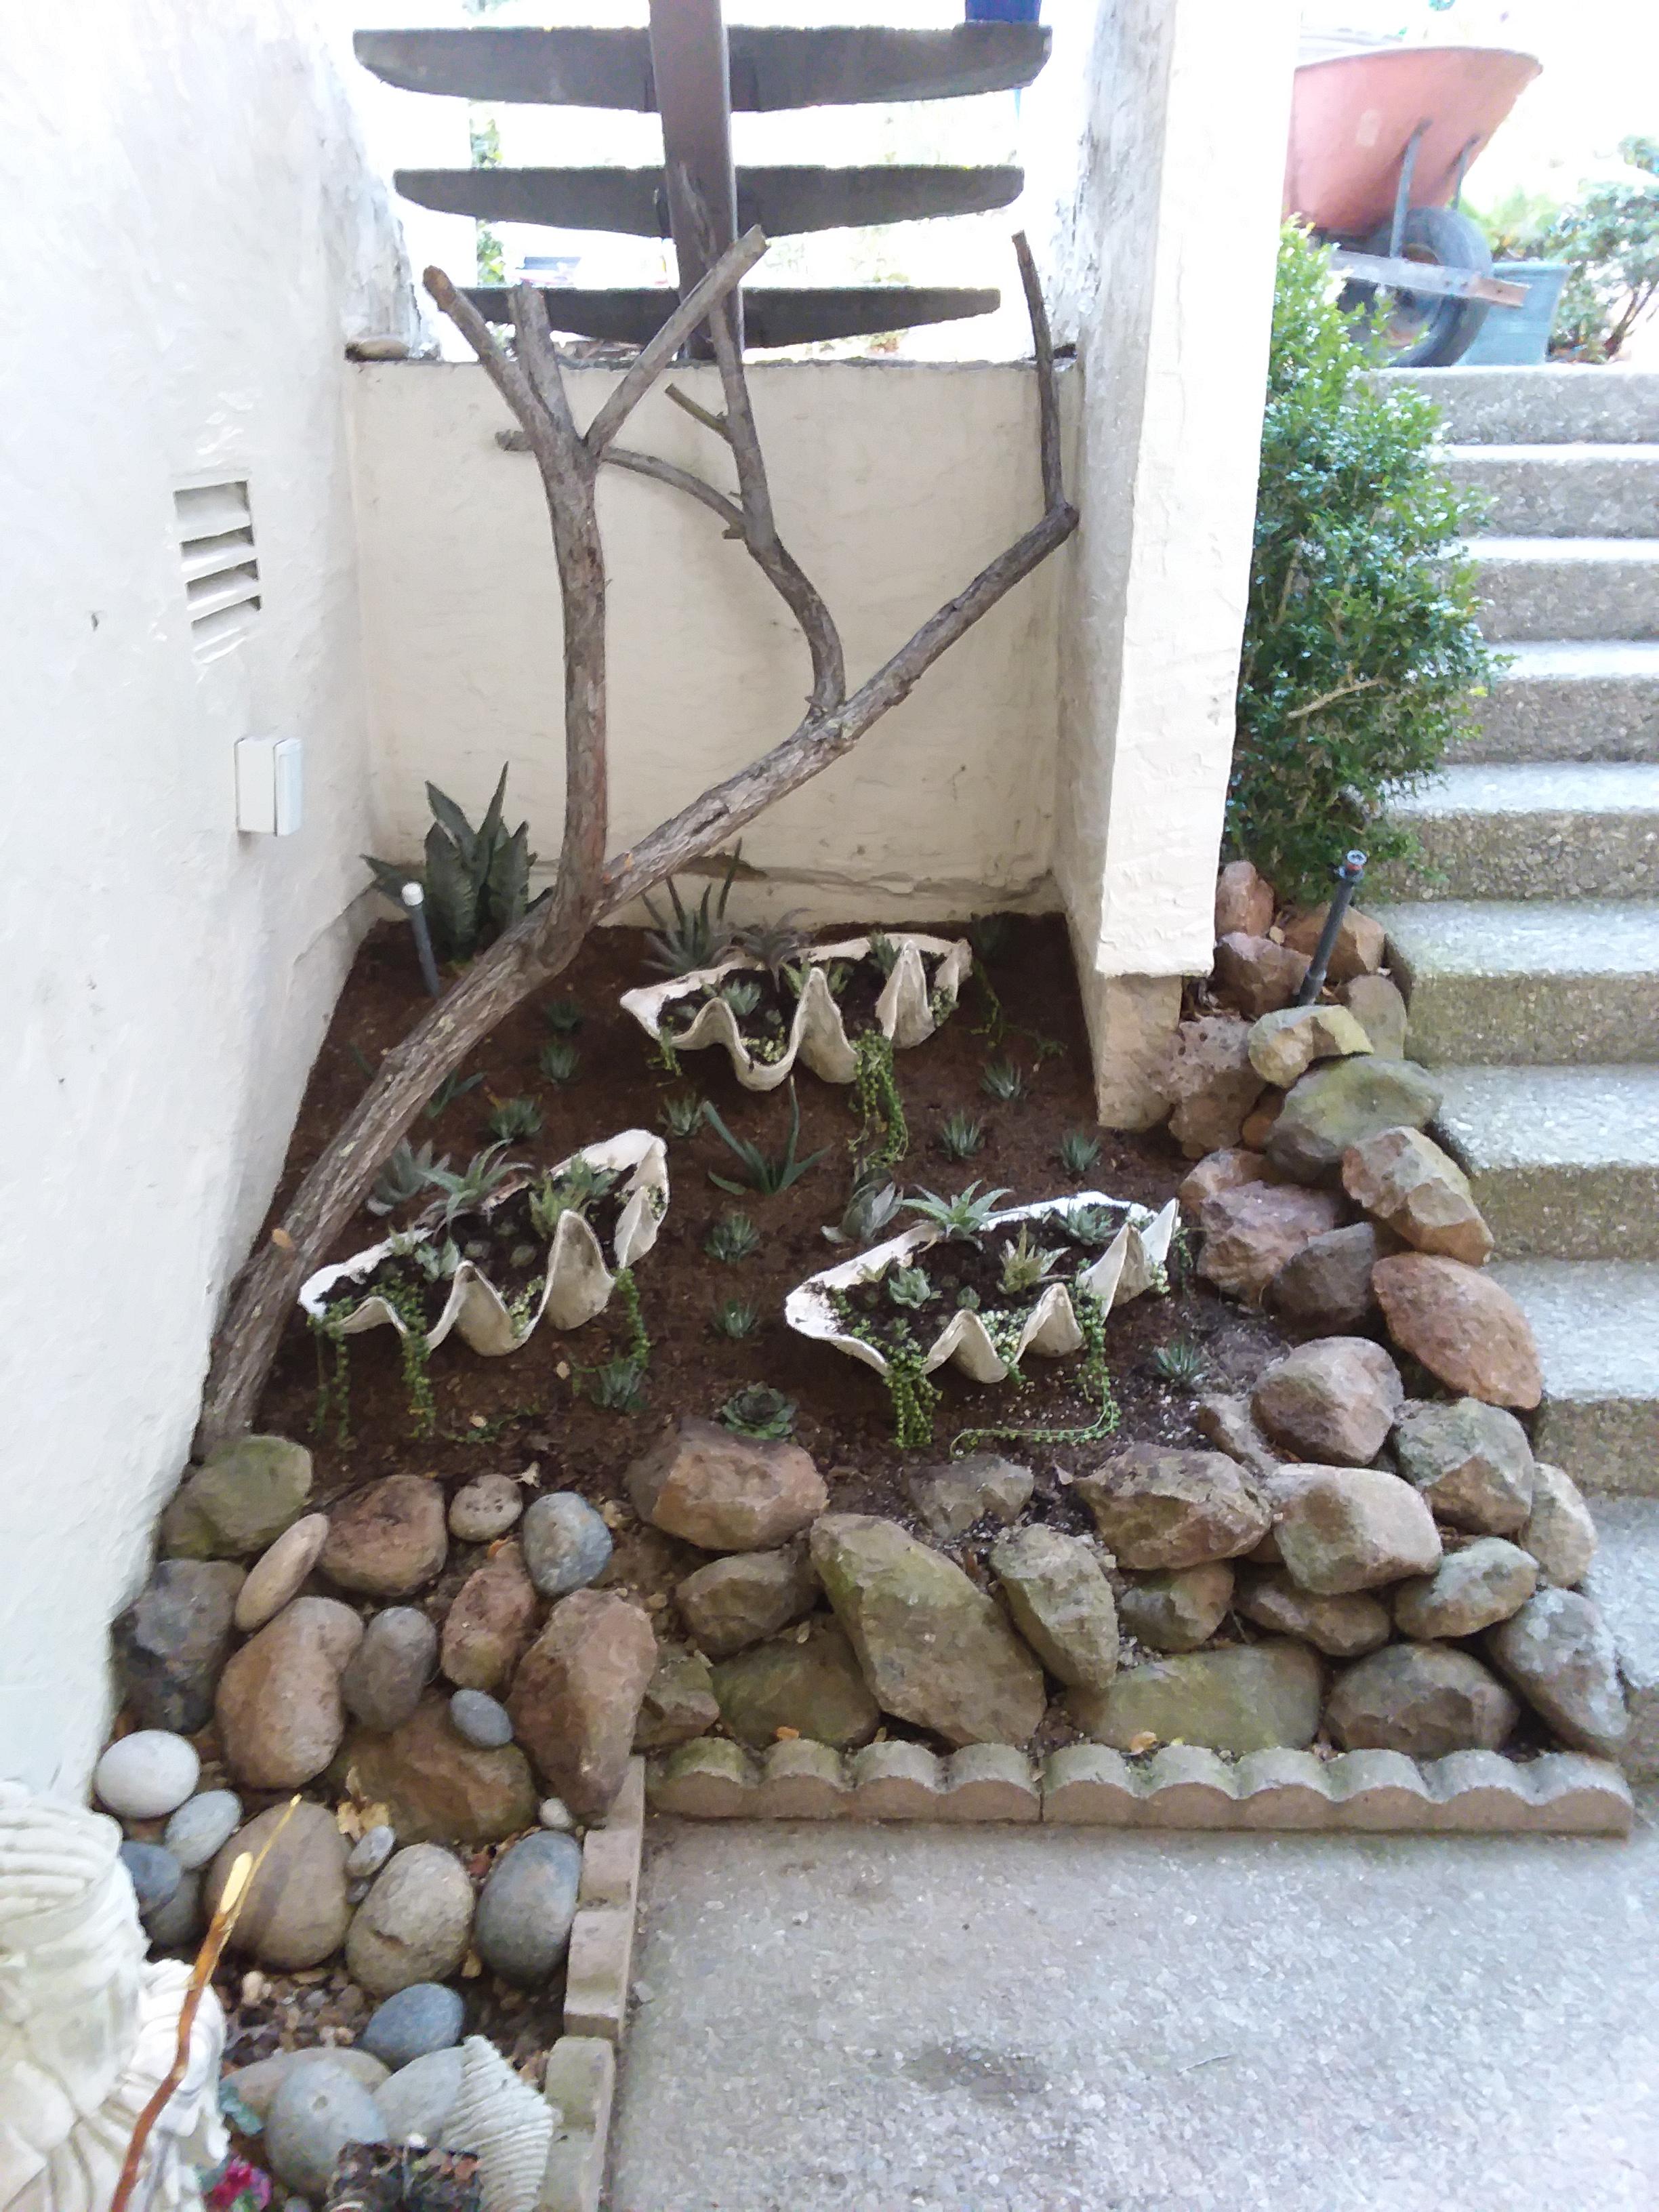 Giant Clam Shells Under Stairwell All Plants Installed - Straight On from Front Door 12-29-18.jpg